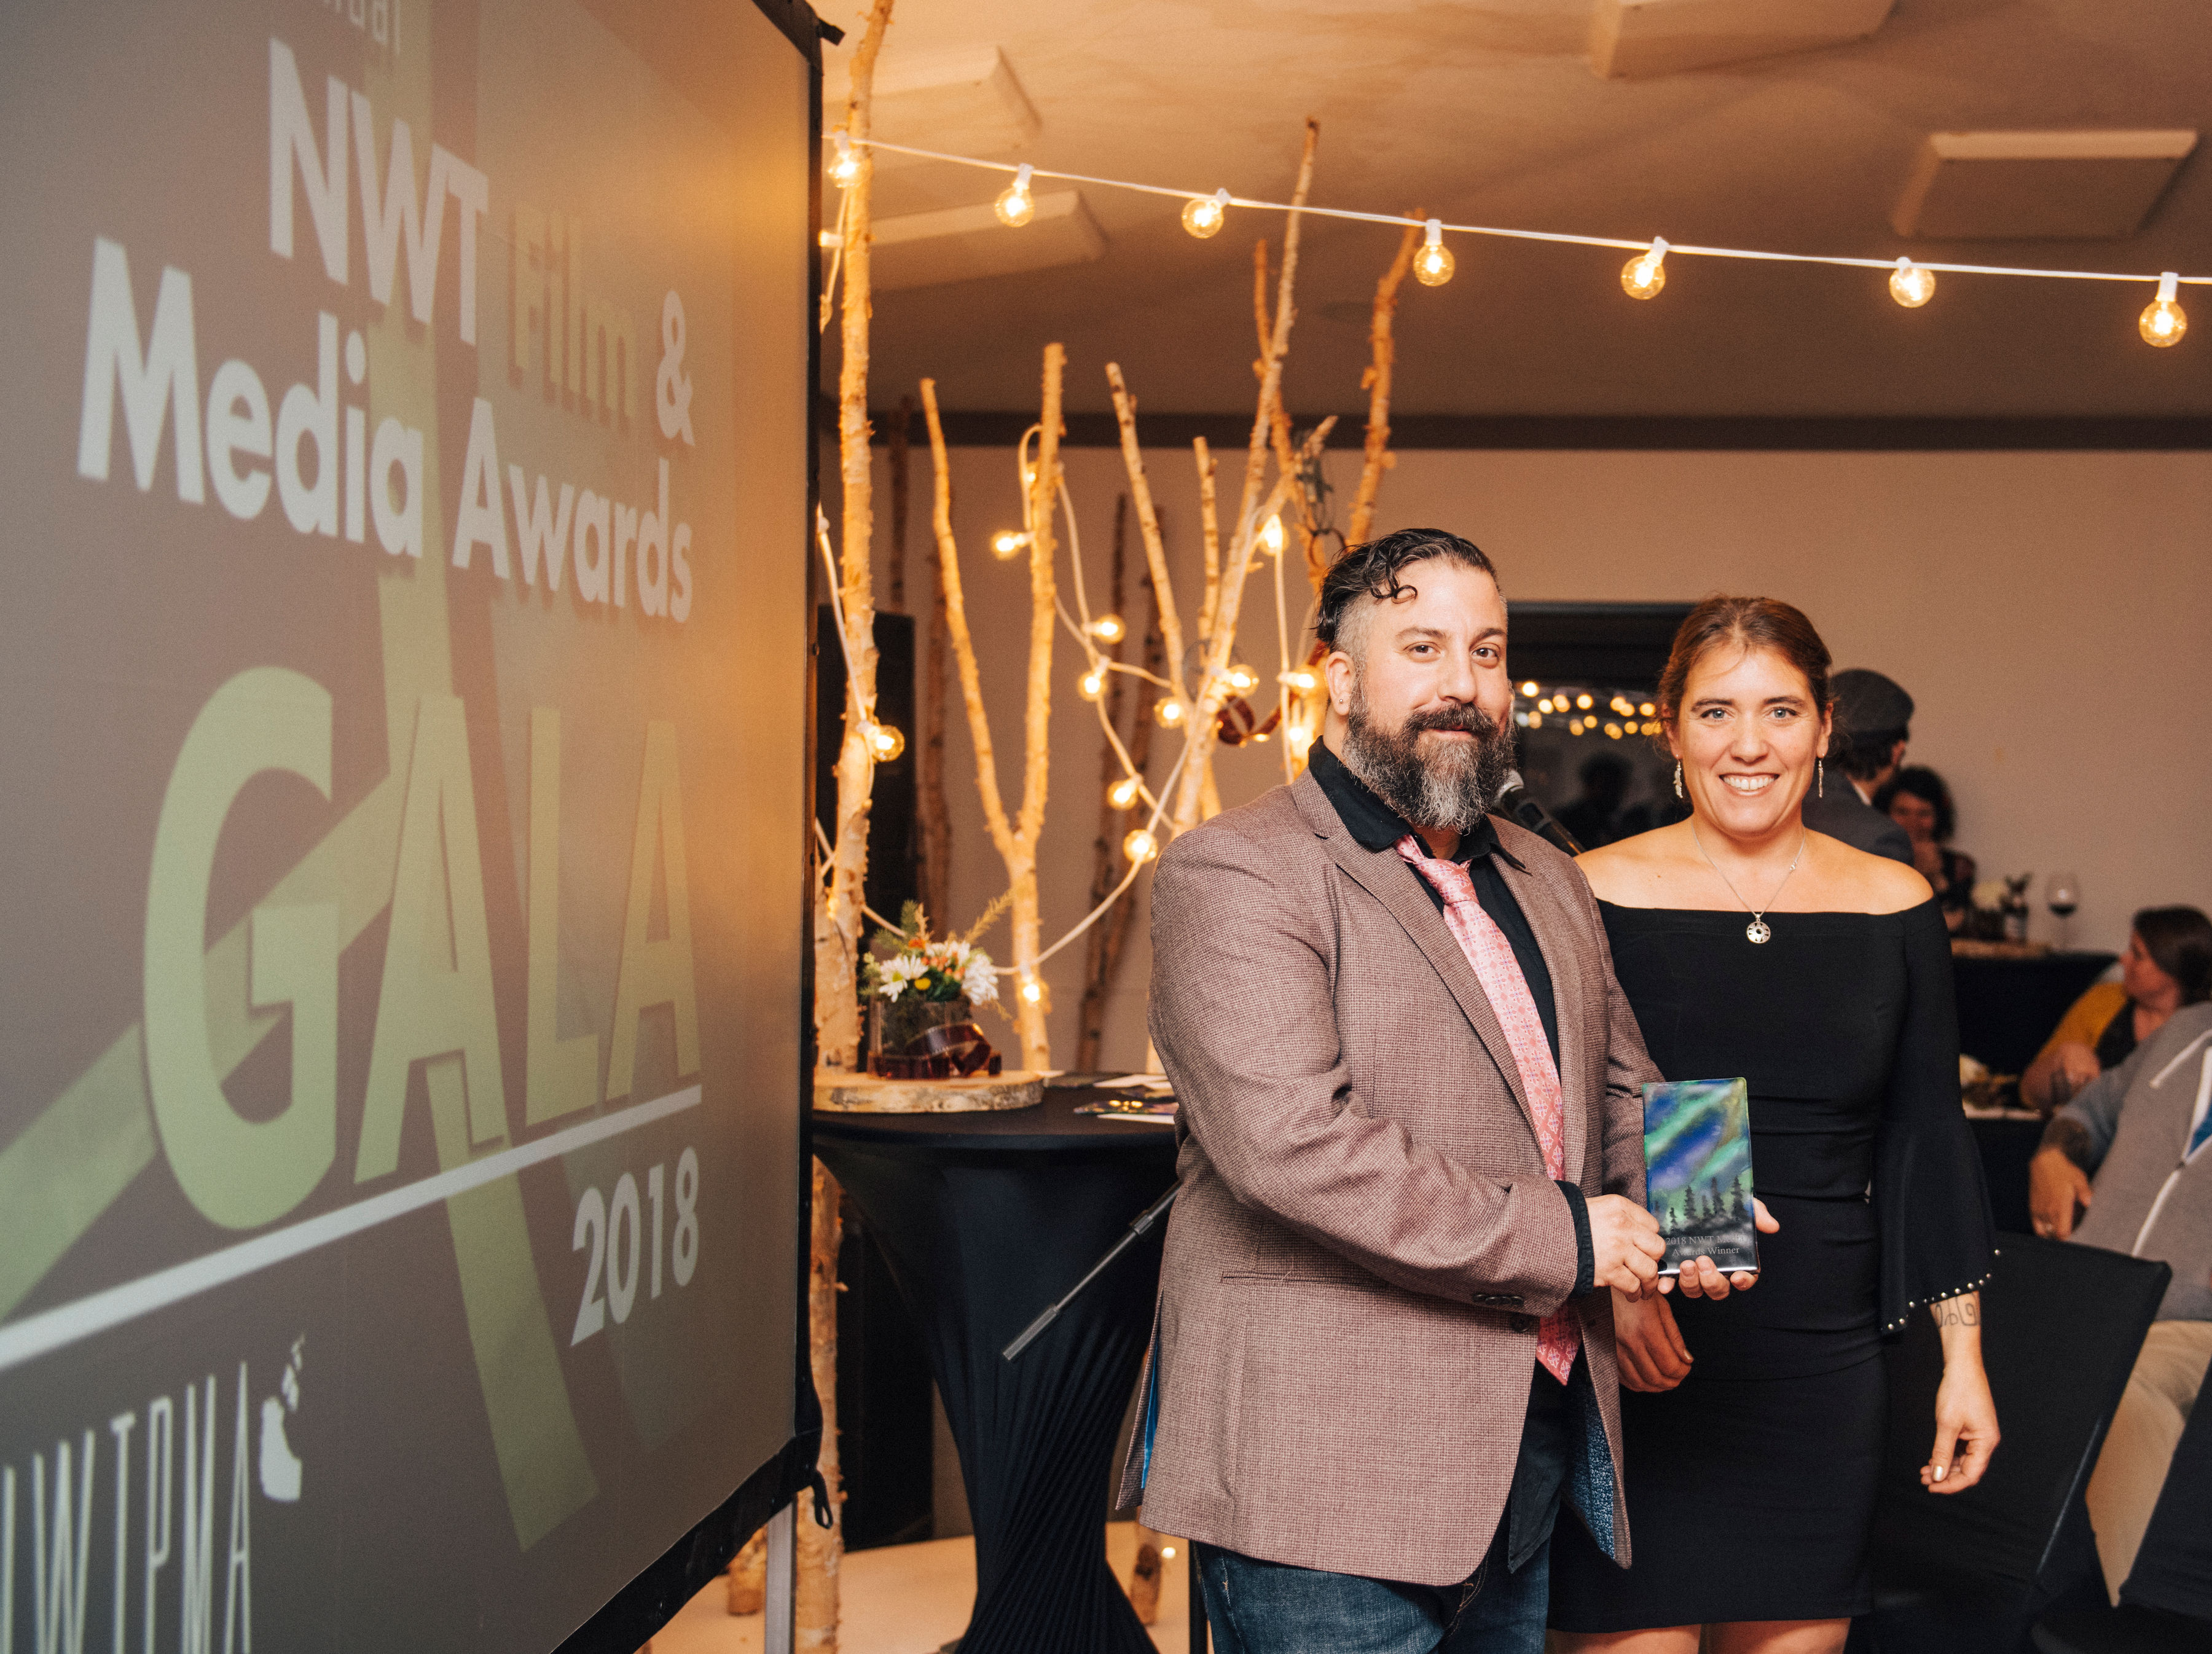 Winners announced for 1st Annual NWT Film & Media Awards